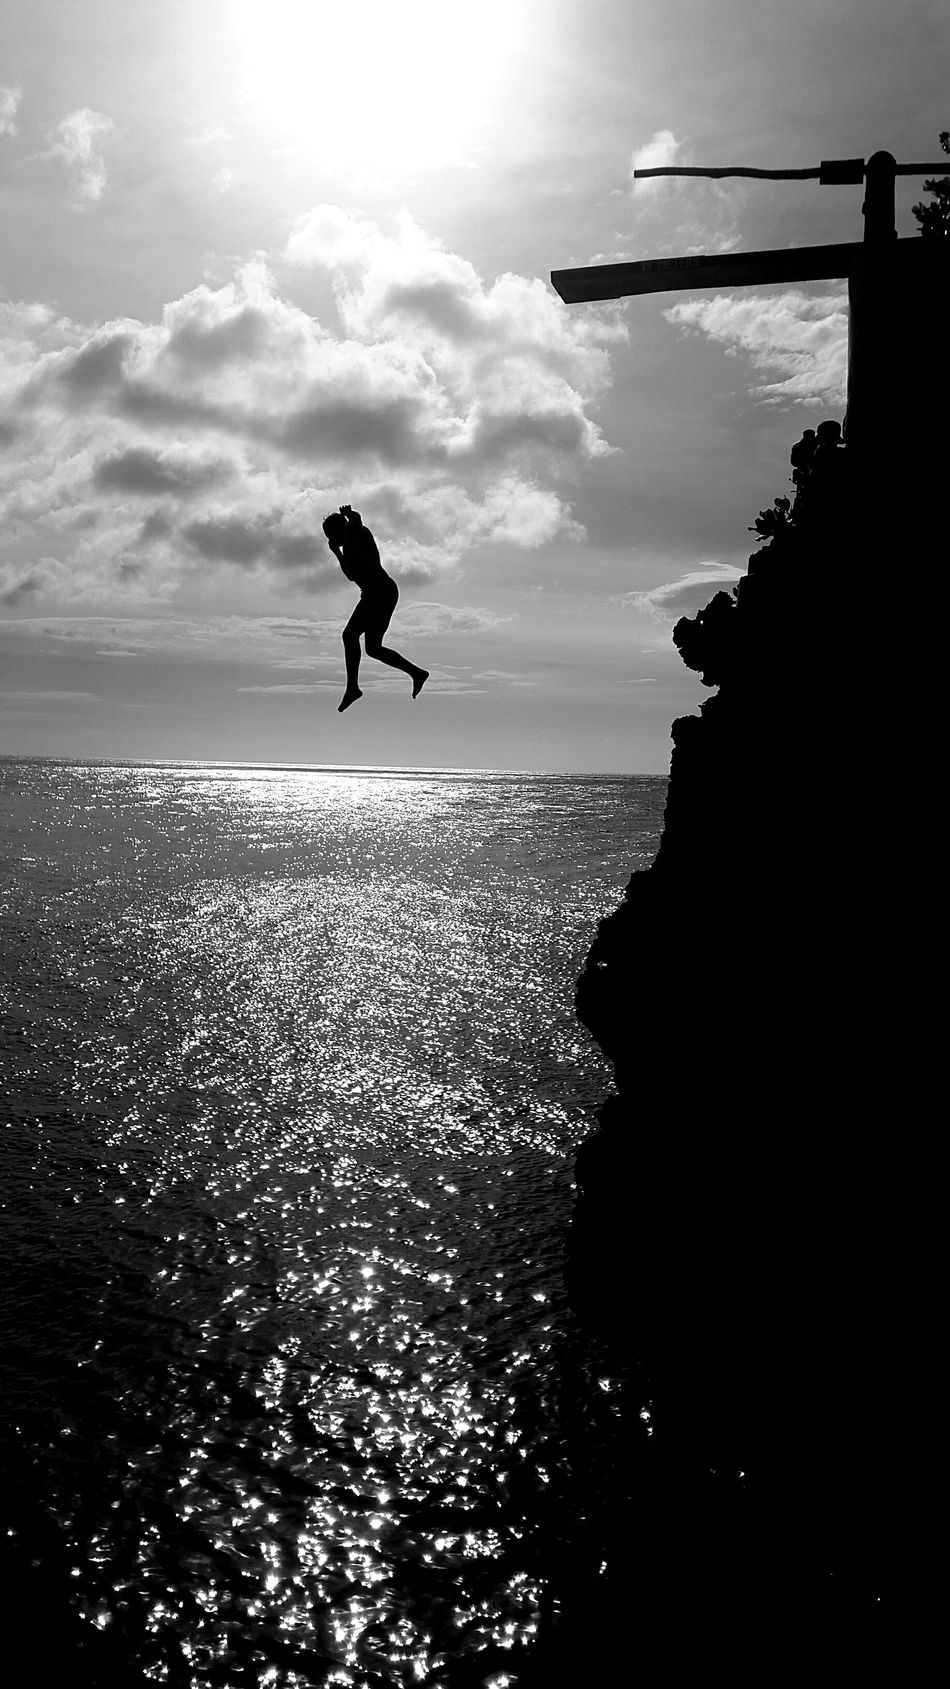 Cliff jumping in Boracay. Cloud - Sky Sea Sky Outdoors Beauty In Nature Horizon Over Water Day Water Nature People Sea Life Black And White Collection  Blackandwhite Photography Black And White Blackandwhite Travel Destinations Travel Check This Out Real People Motion Cliff Diving Cliffsandsea CliffJumping Boracay Island  Boracay Miles Away